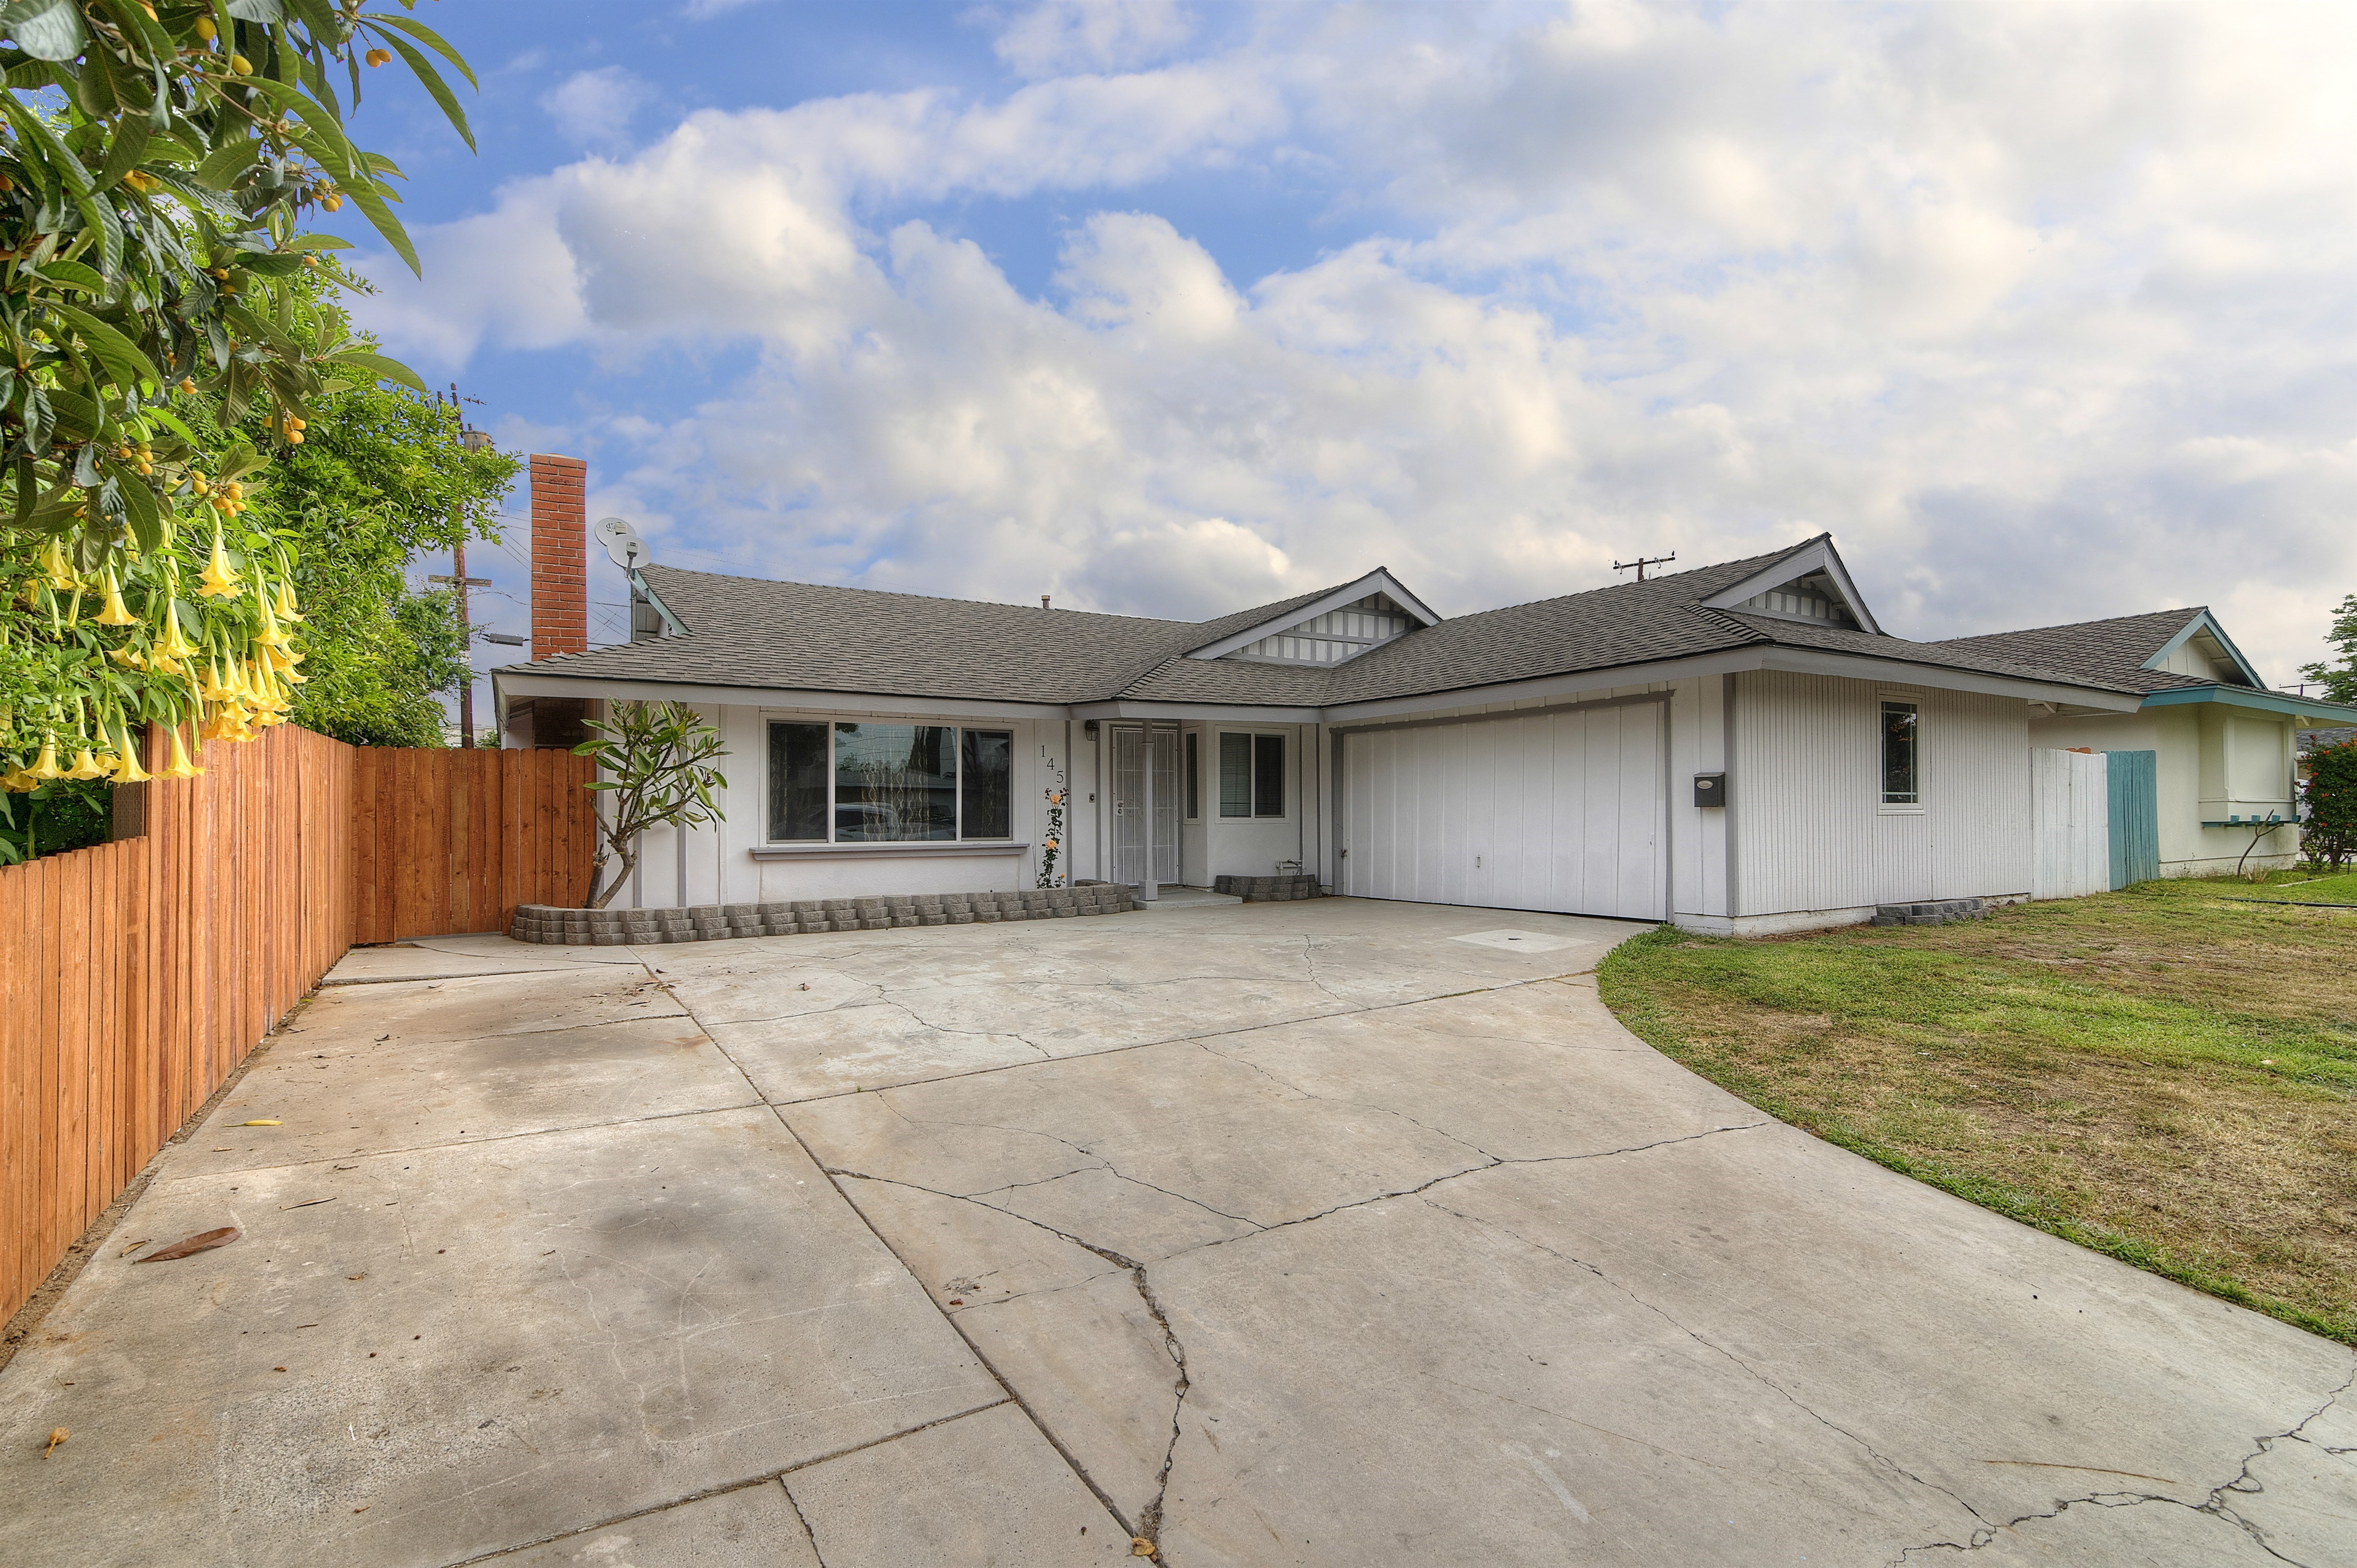 145 E. Hoover Avenue Orange, Ca 92867